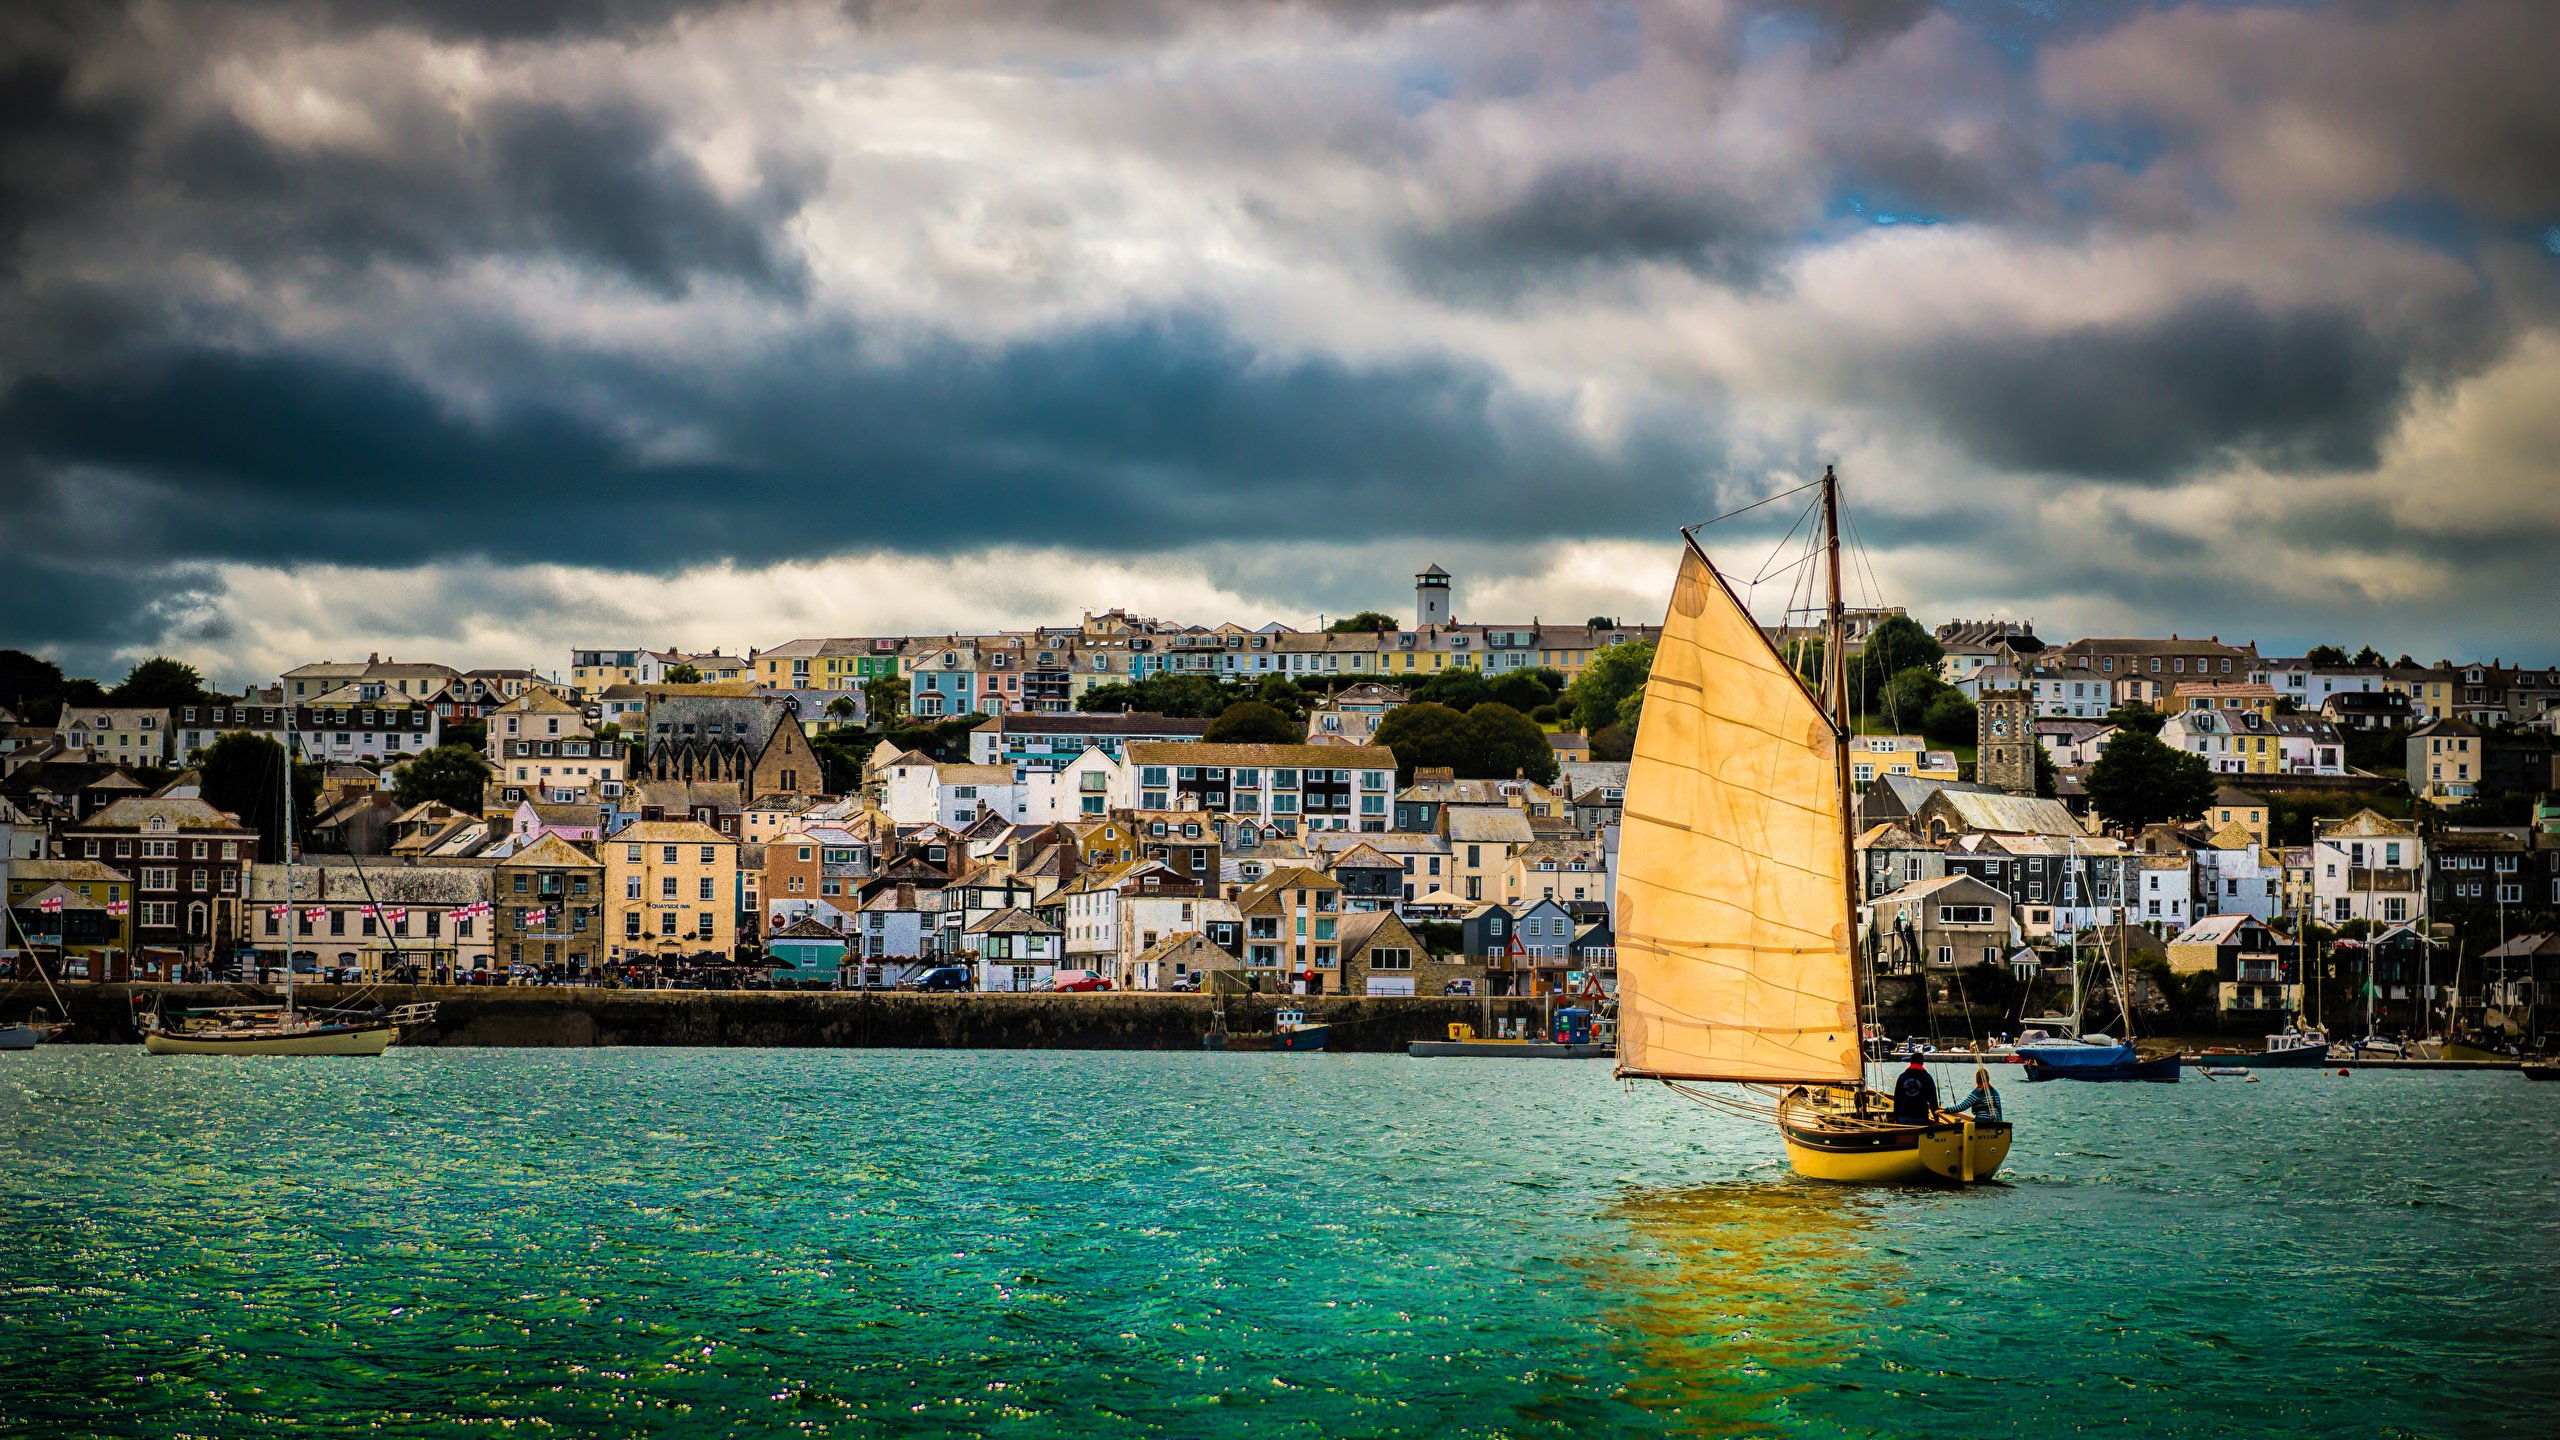 Images England United Kingdom Cornwall Falmouth Harbour 2560x1440 2560x1440